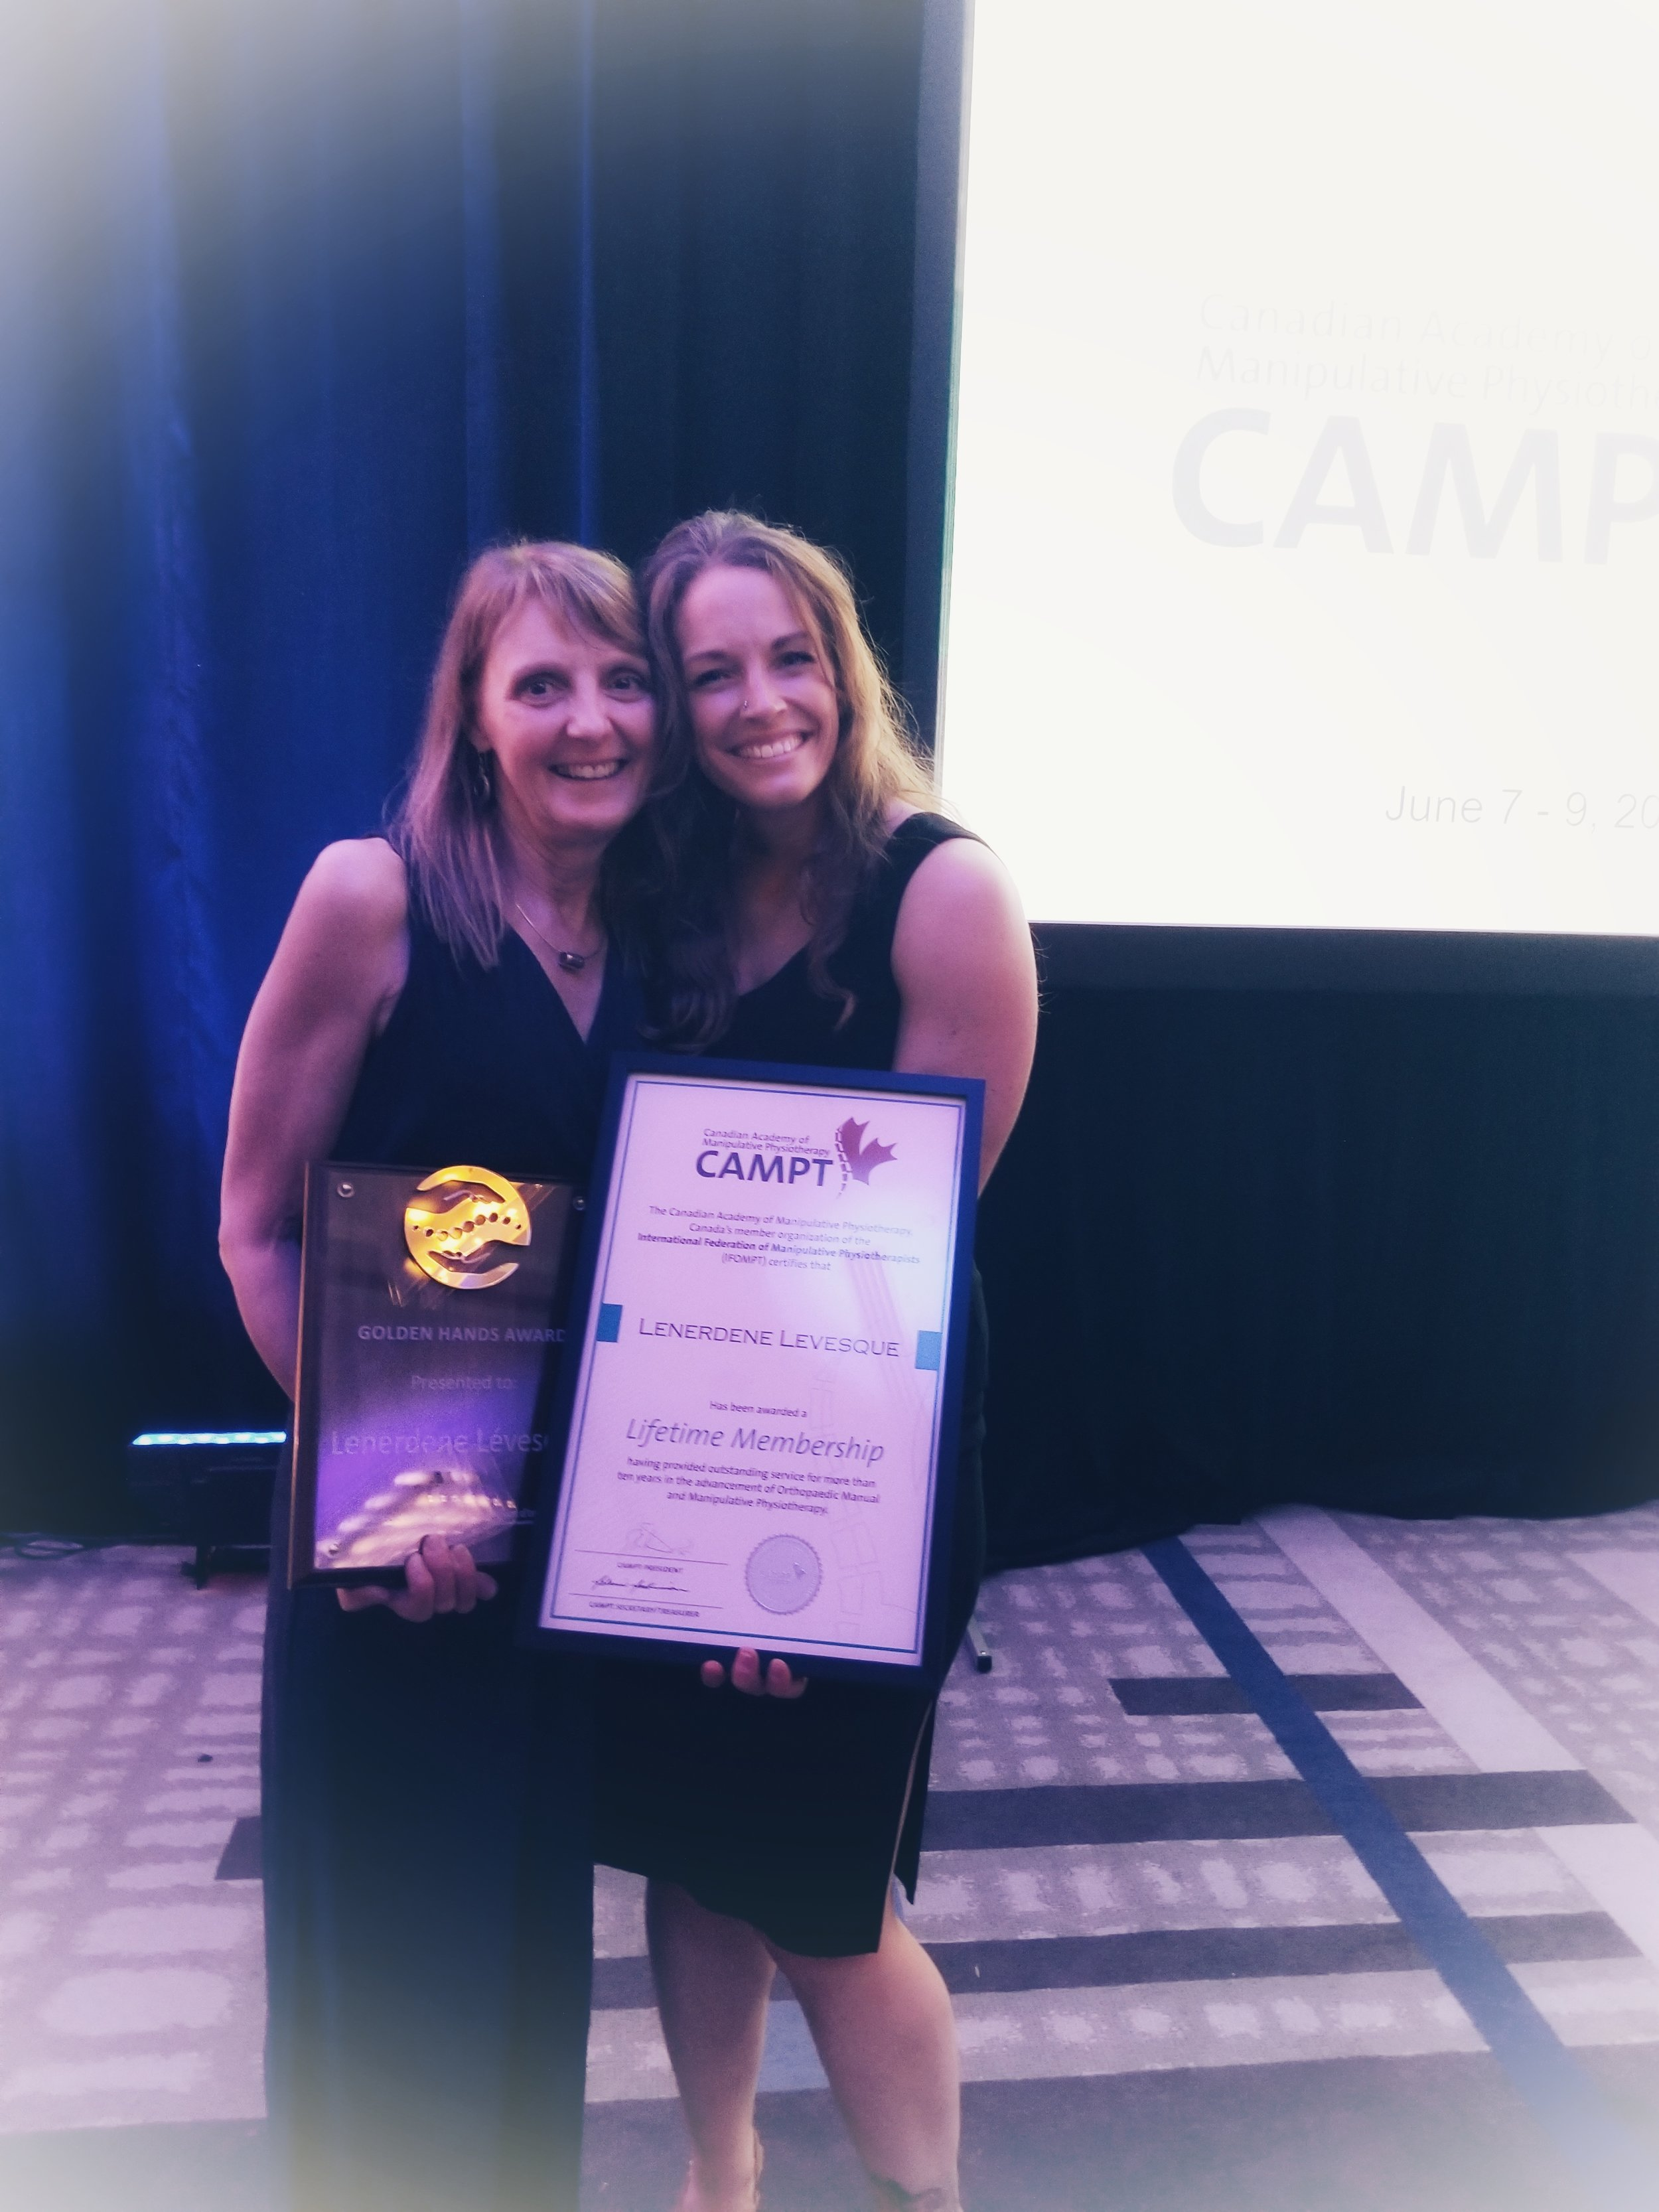 Lenerdene received the Golden Hands Award and a Lifetime membership to CAMPT in the same year.